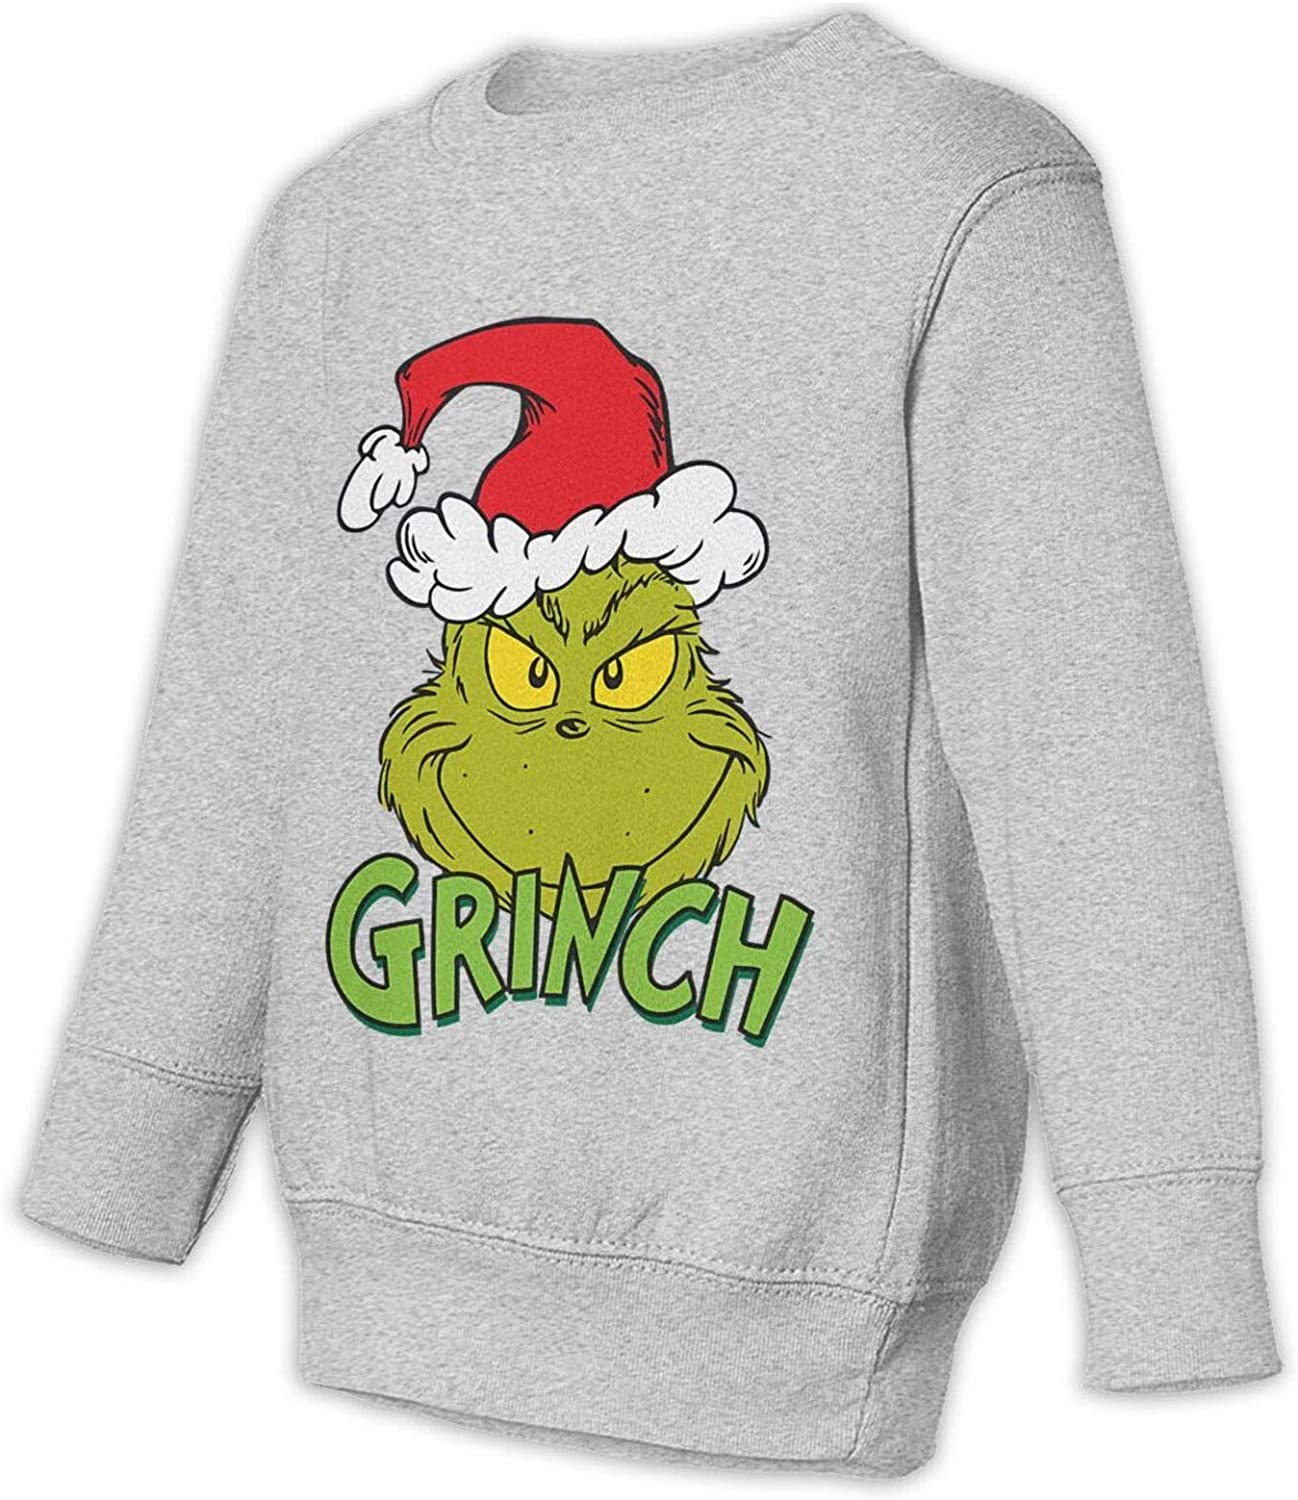 Long Sleeve,Personality and Novelty DEMO QUEEN The Grinch Stole Christmas21 Kids Unisex Round Neck Sweatshirt